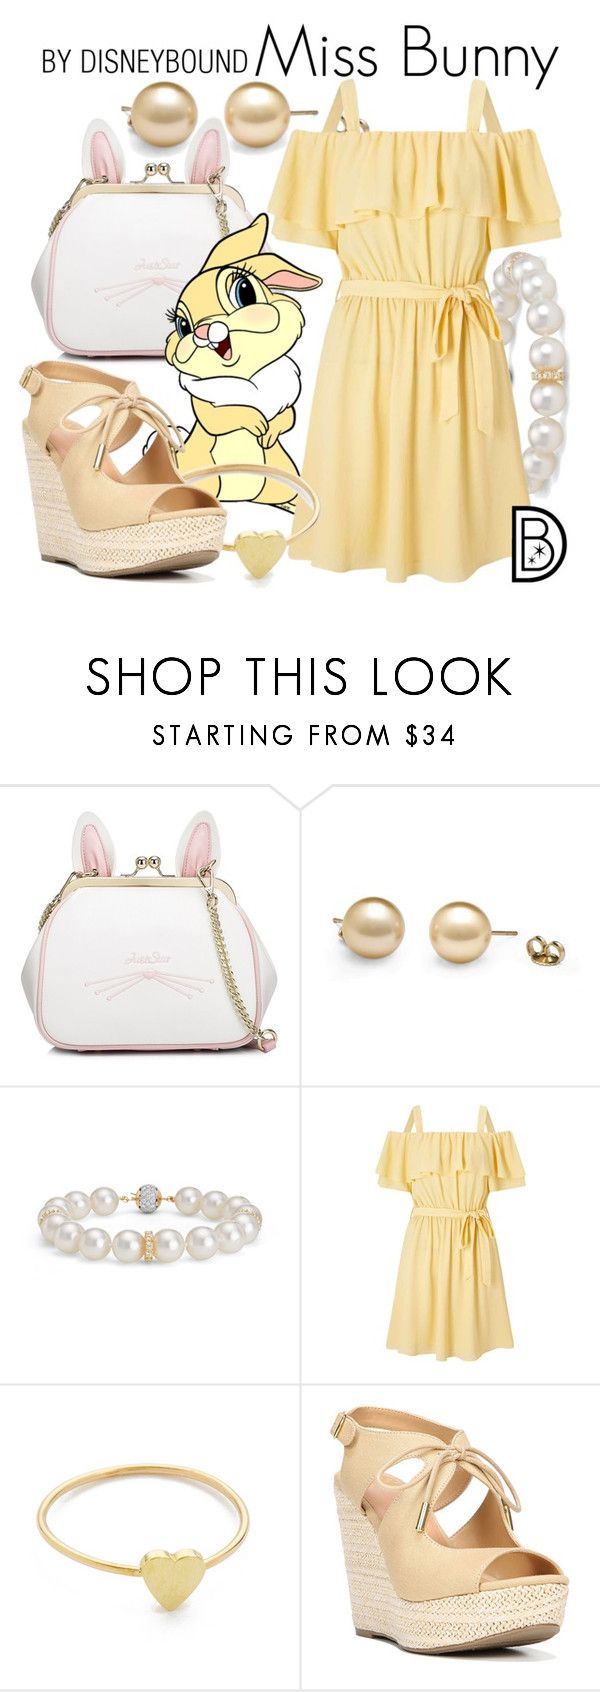 """""""Miss Bunny"""" by leslieakay ❤ liked on Polyvore featuring WithChic, Blue Nile, Miss Selfridge, Jennifer Meyer Jewelry, Fergalicious, disney, disneybound and disneycharacter"""